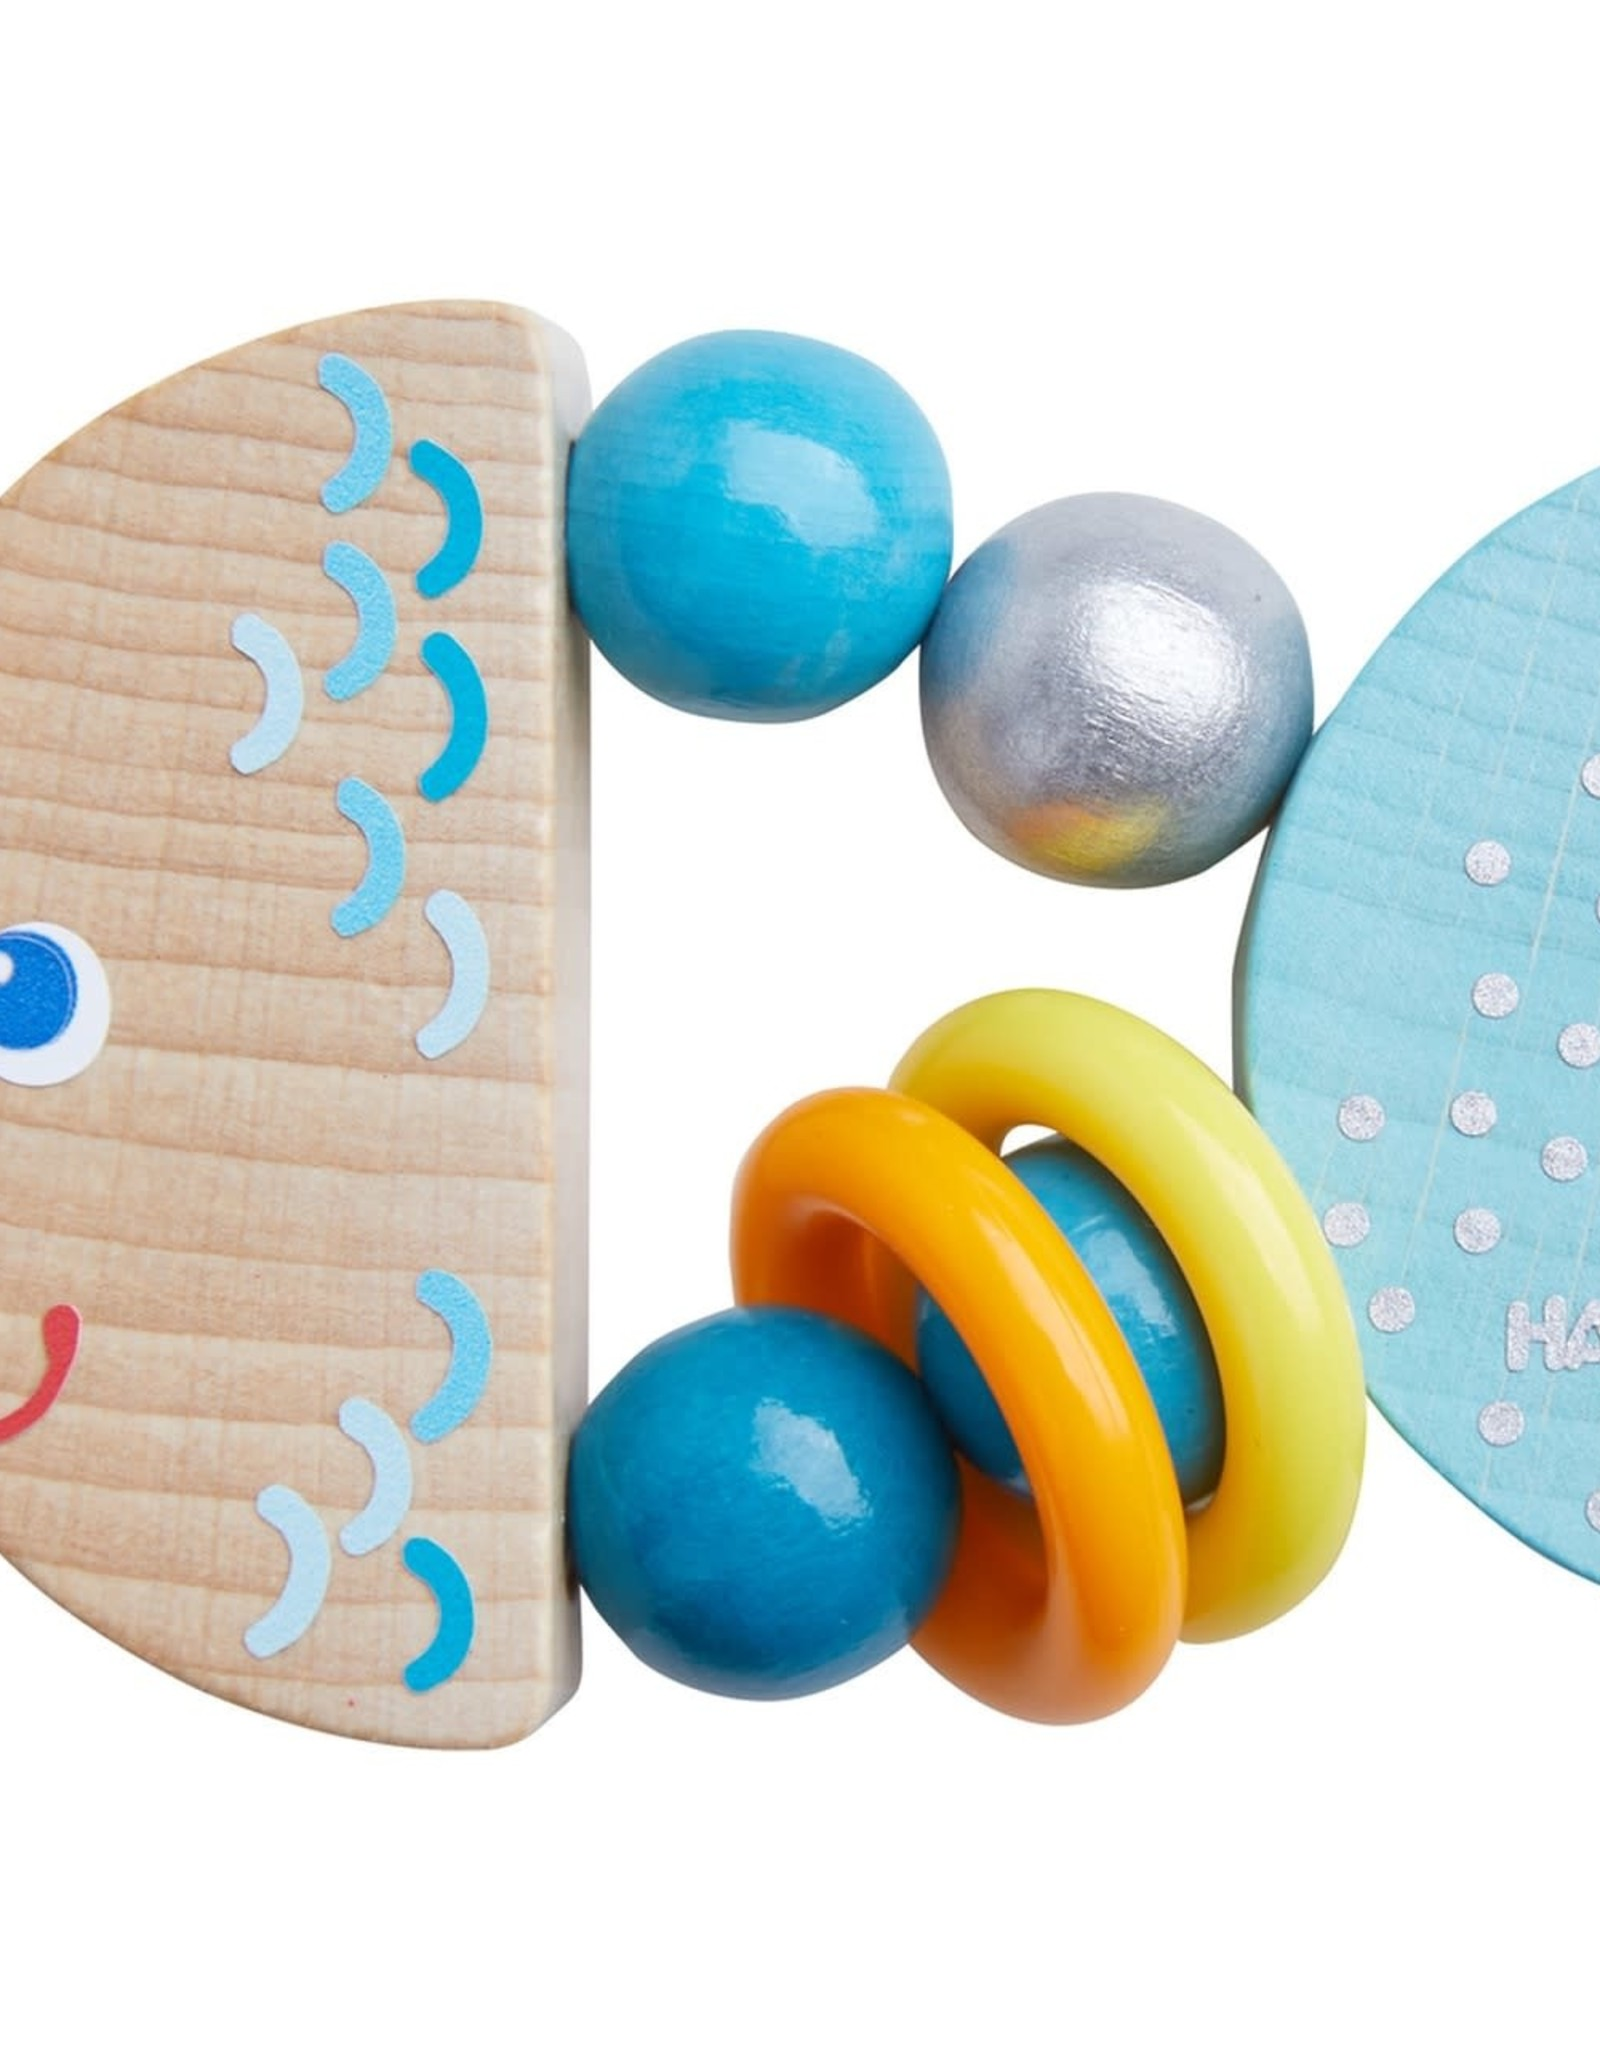 Haba Wooden Clutching Toy Rattlefish